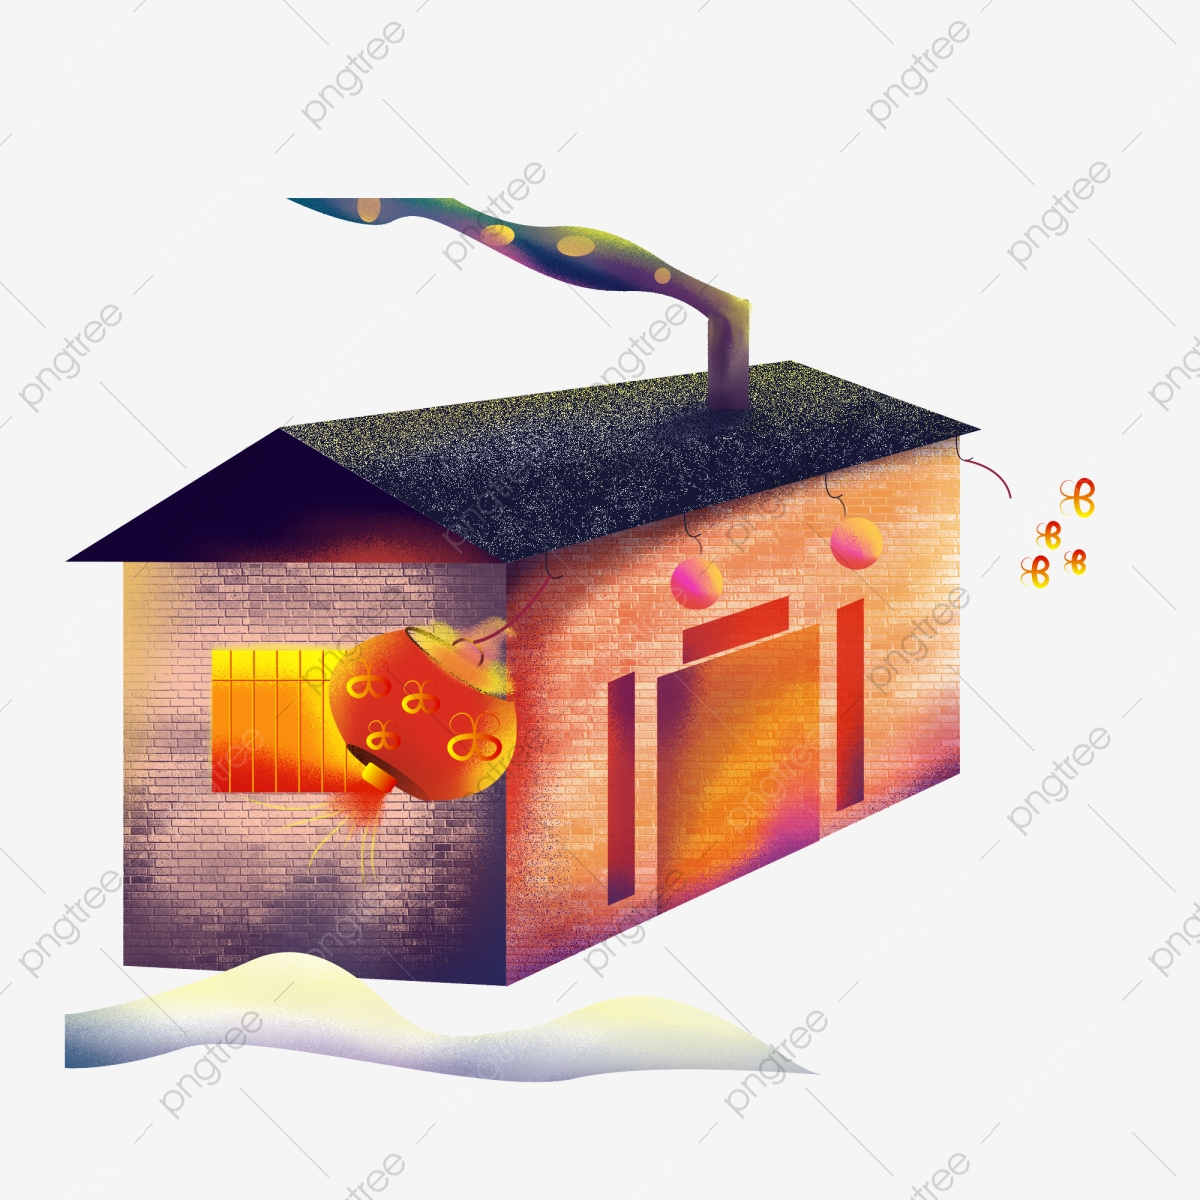 Hand Painted Chinese Style Small House Design With Commercial